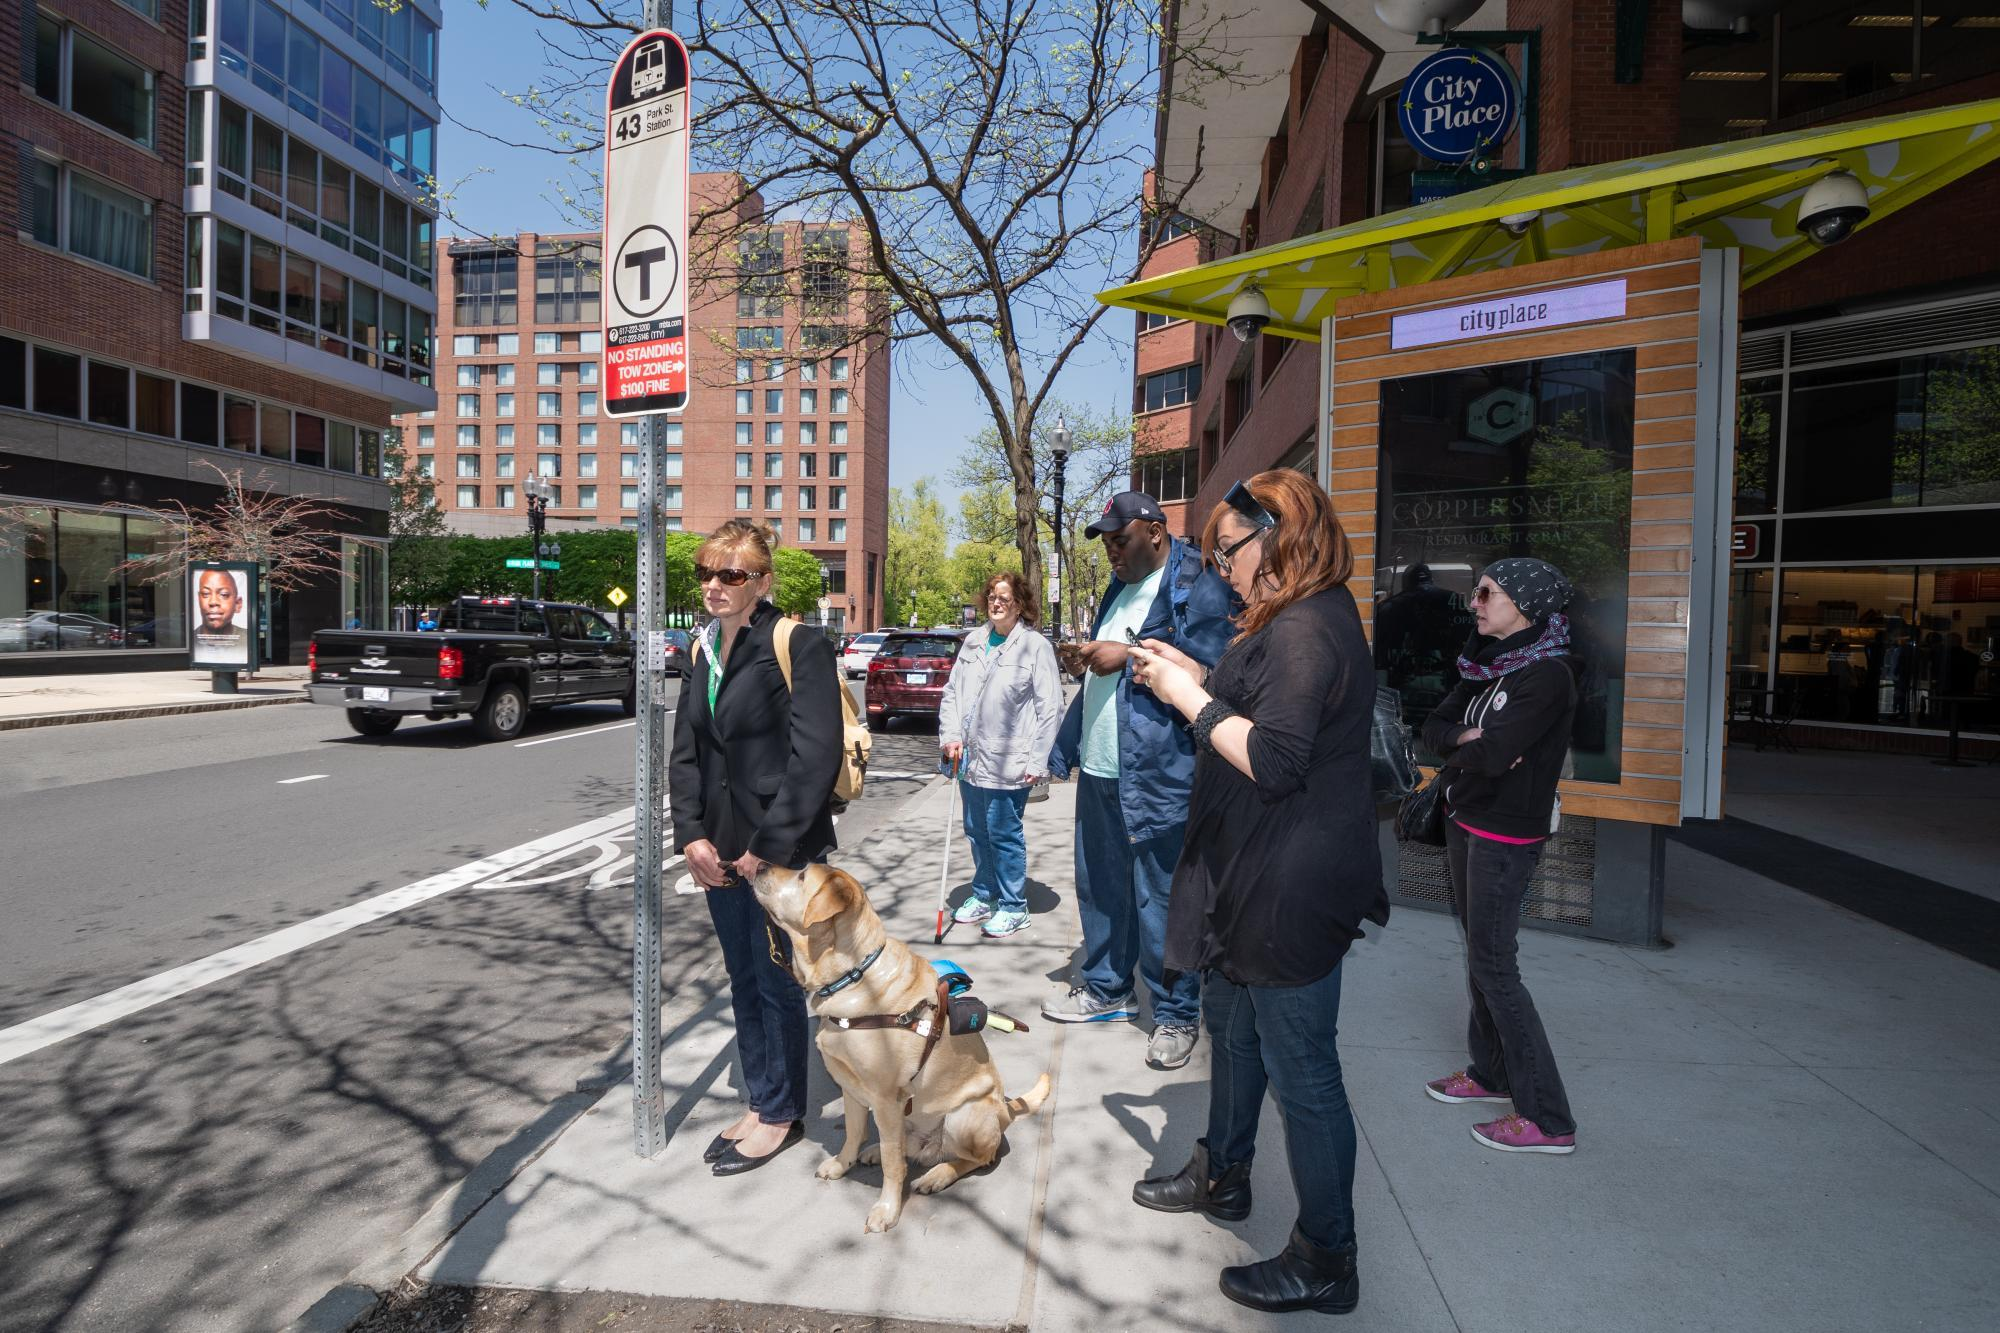 customers waiting at bus stop with guide dog